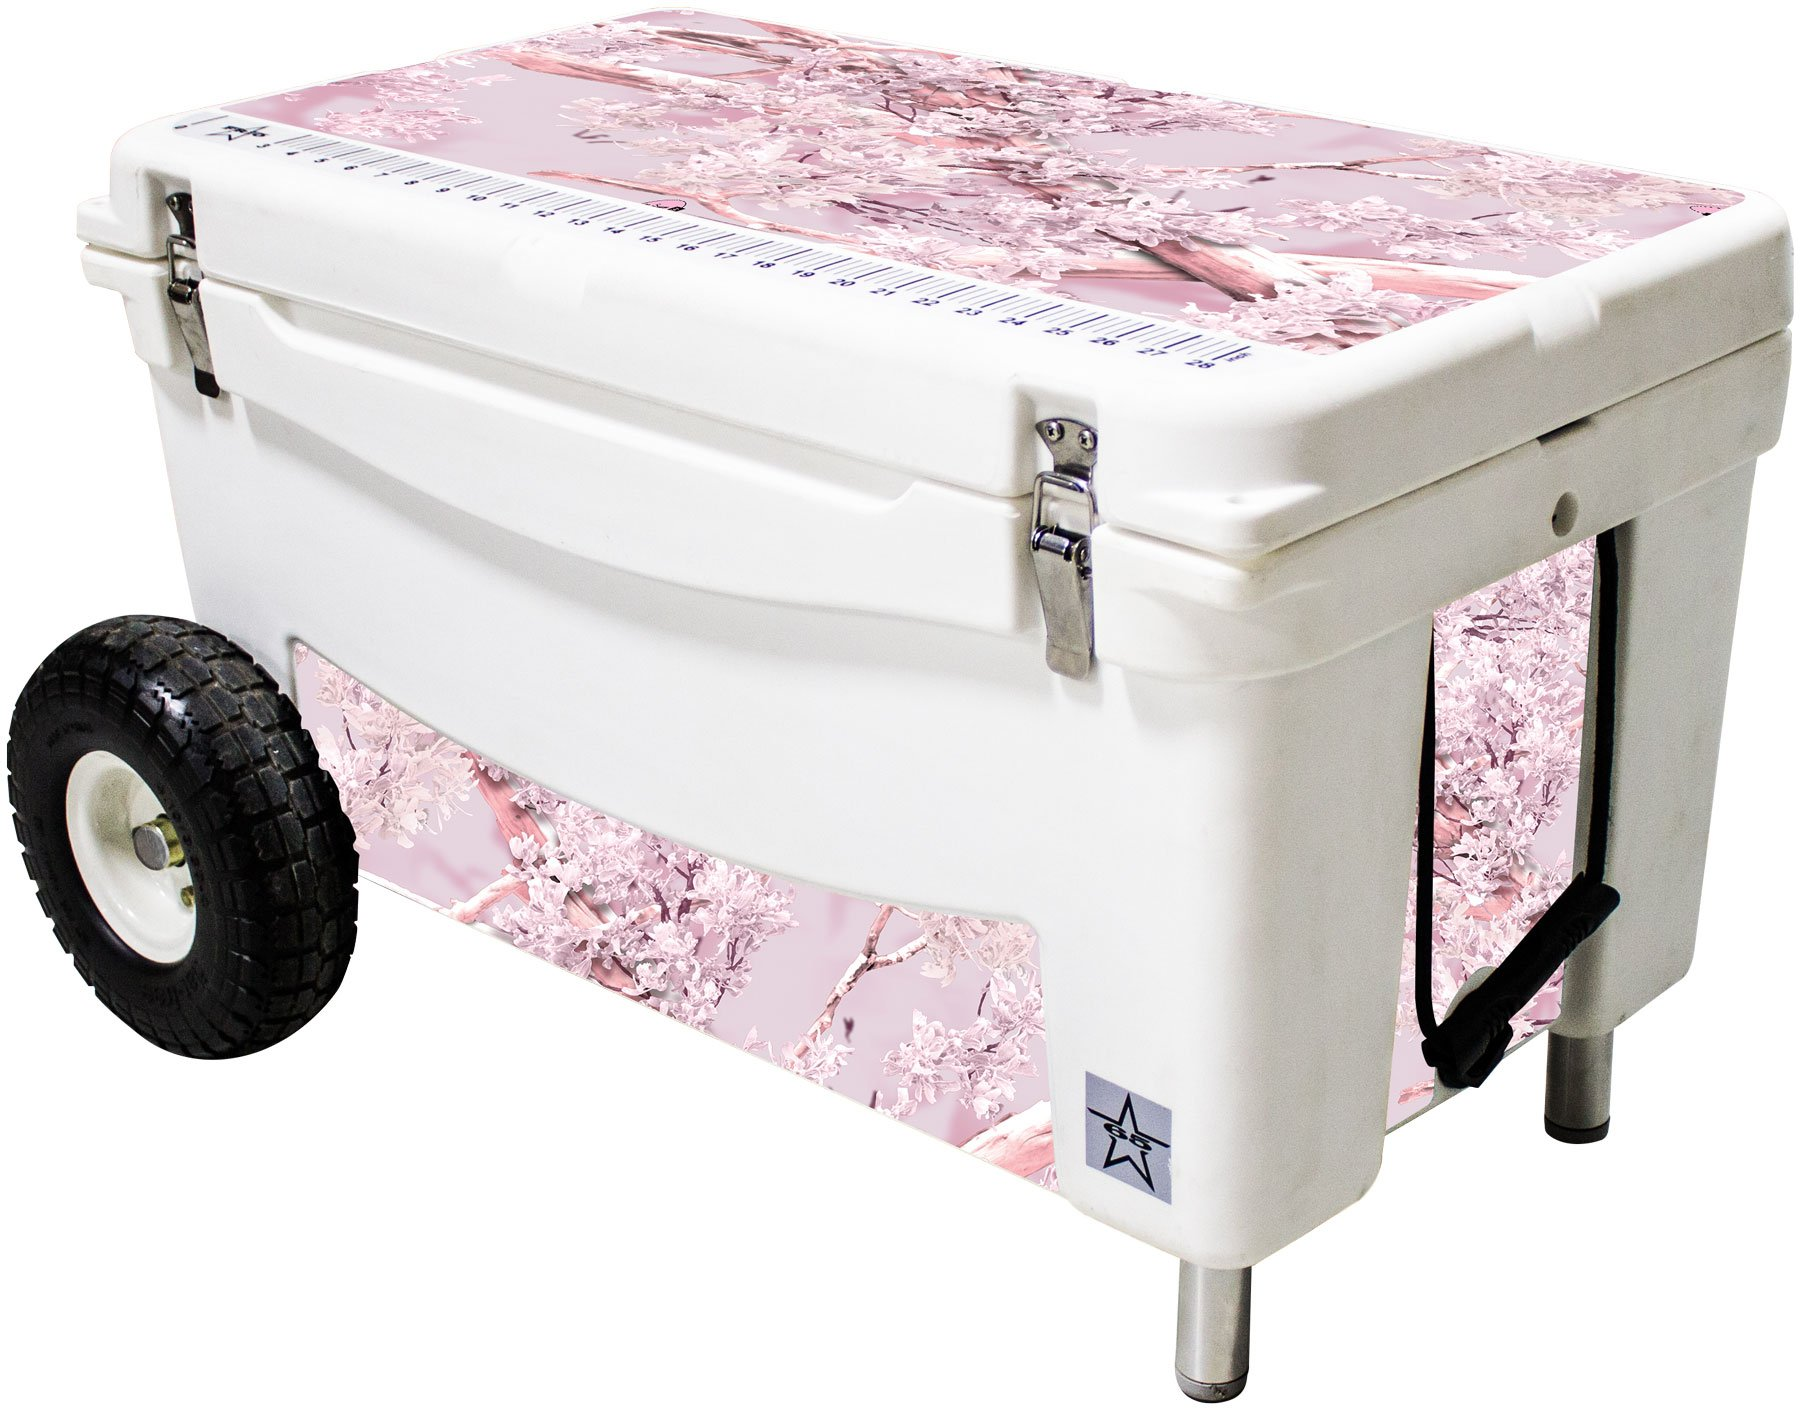 Frio Ice Chests 65Qt Extreme Wheeled White Hard Side with King's Camo Pink Theme Vinyl Wrap and Built-in Motion Sensitive Light Bar with Bottle Openers by Frio Ice Chests